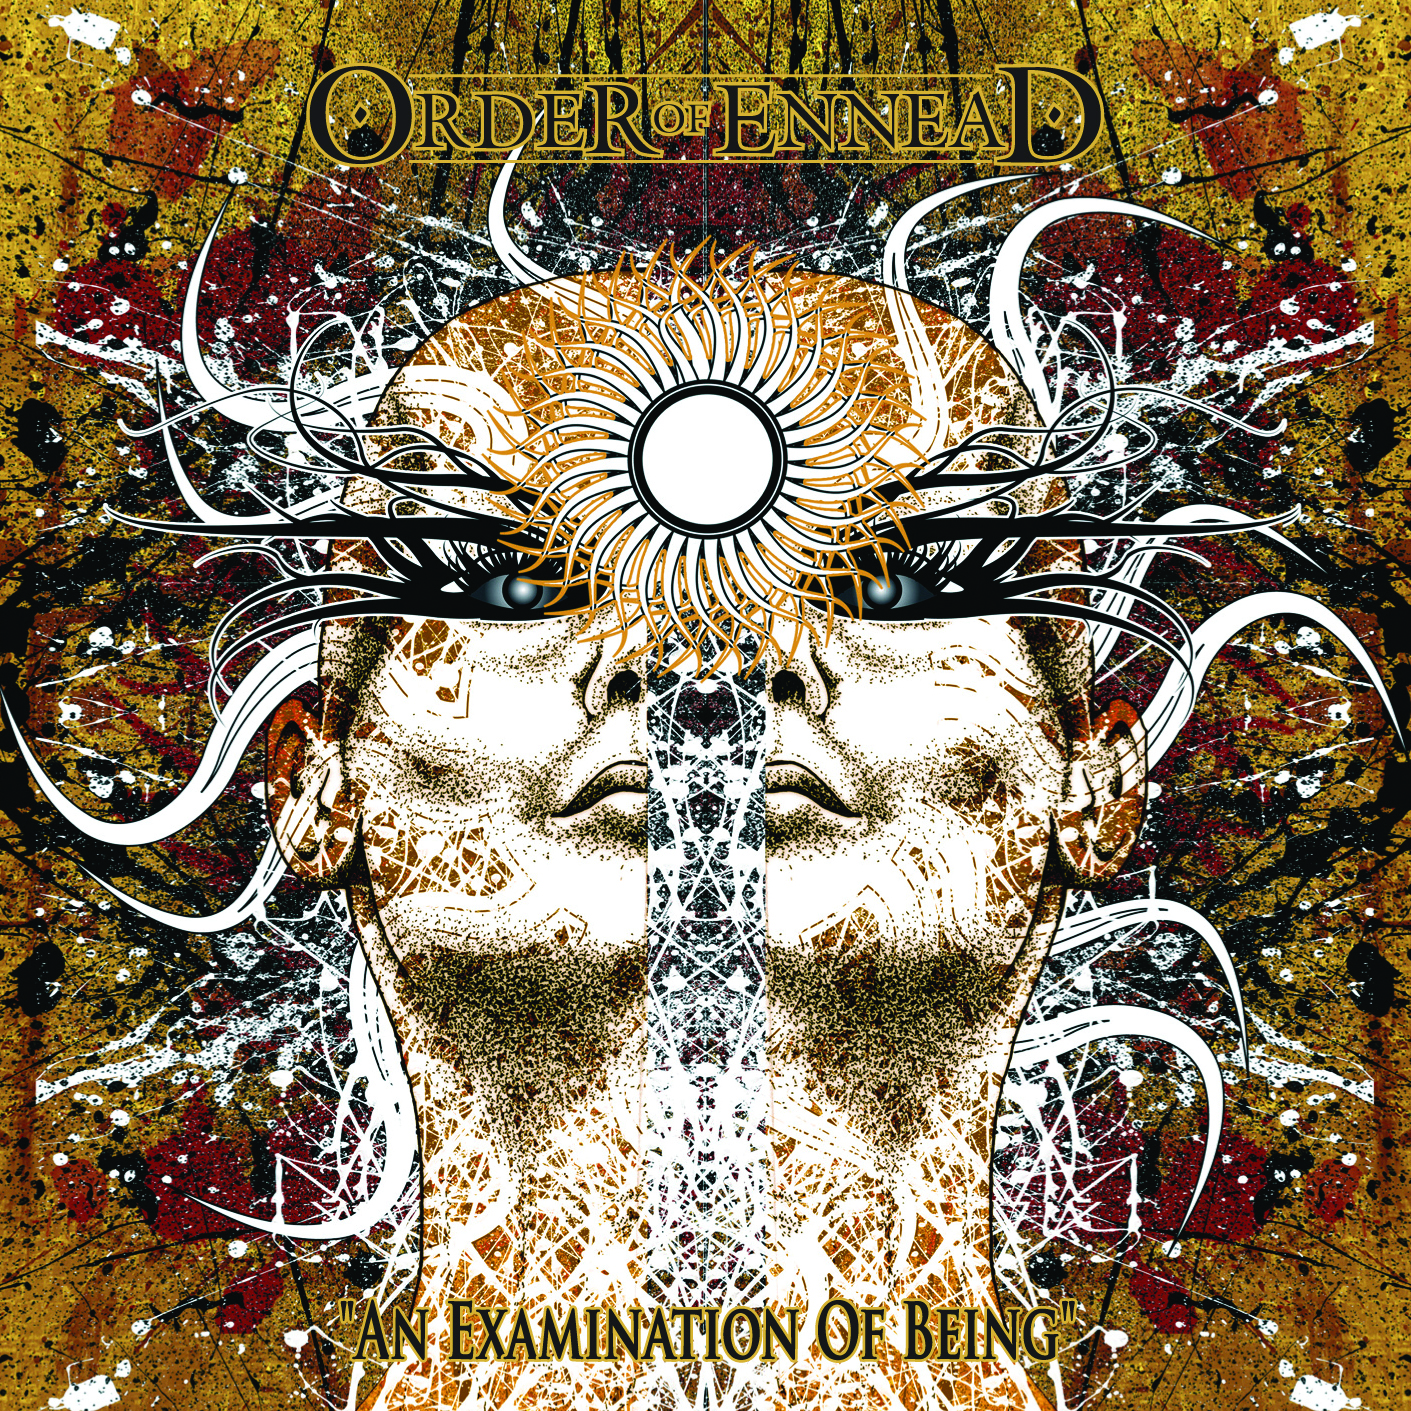 Order of Ennead – An Examination of Being Review